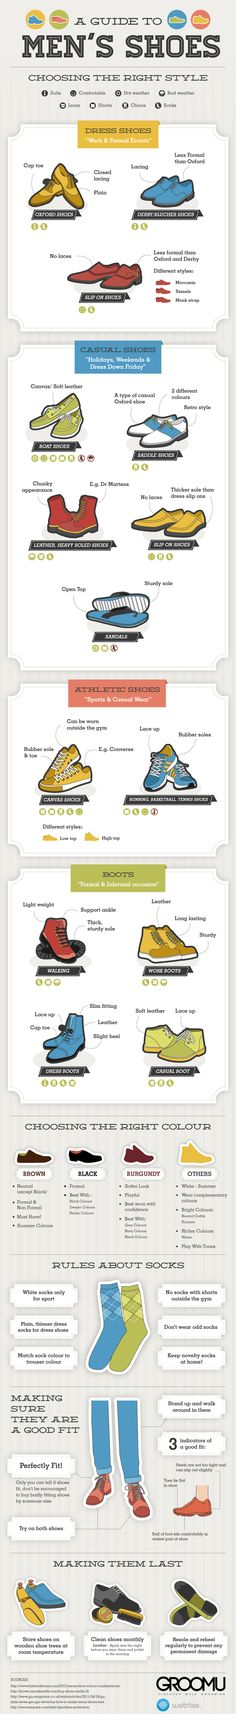 A Guide To Men's Shoes & Socks!